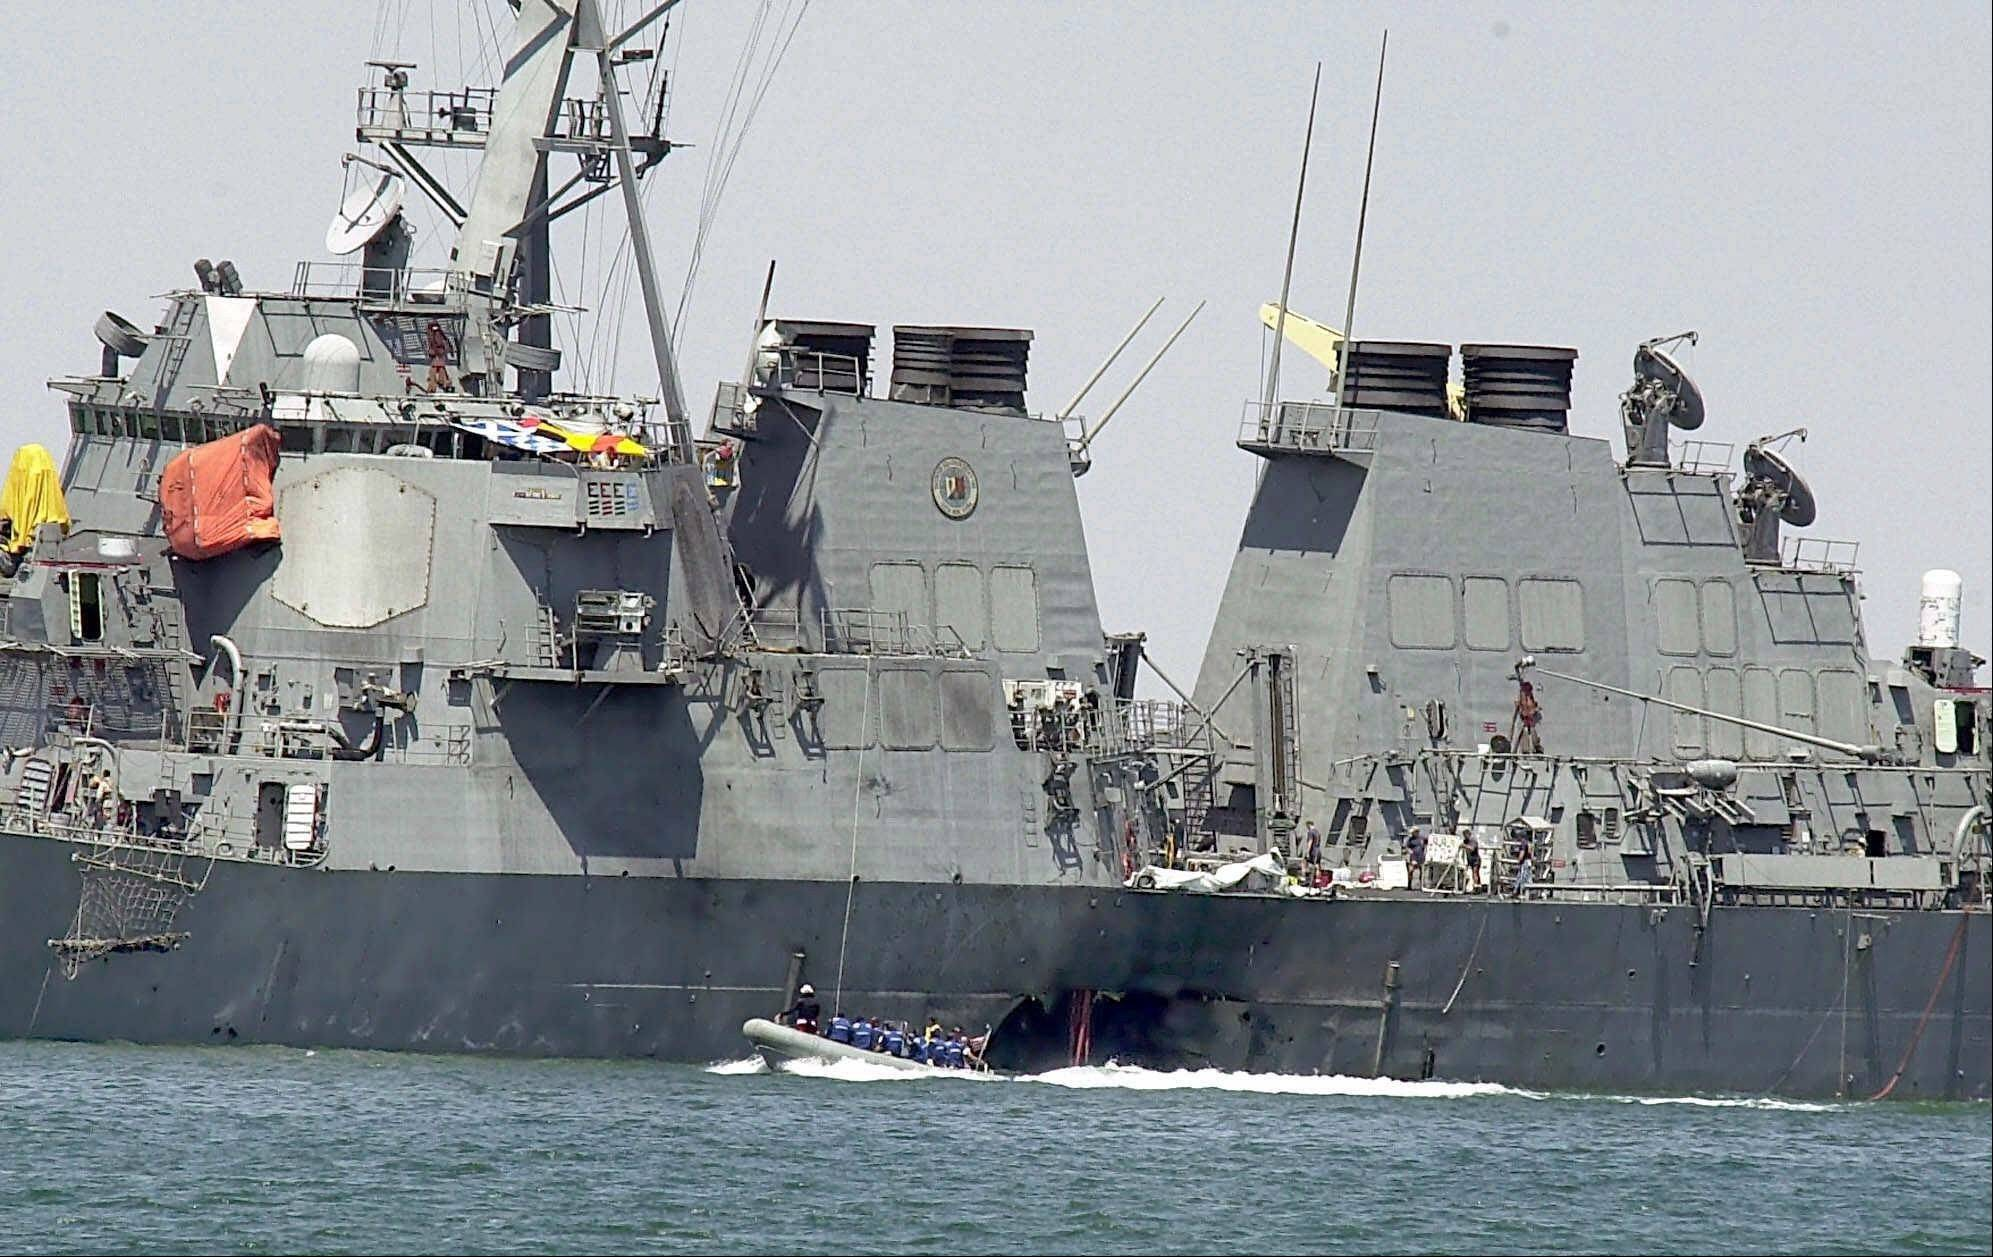 In this Oct. 15, 2000, file photo, investigators in a speed boat examine the hull of the USS Cole at the Yemeni port of Aden, after a powerful explosion ripped a hole in the U.S. Navy destroyer. Abd al-Rahim al-Nashiri, a Saudi national accused in the 2000 bombing of the USS Cole warship, faces trial in a special tribunal for wartime offenses known as a military commission for allegedly orchestrating the bombing of the USS Cole as well as attacks on two other ships. But his lawyers say that since the U.S. wasn't at war at that time, the 47-year-old shouldn't be tried at Guantanamo.